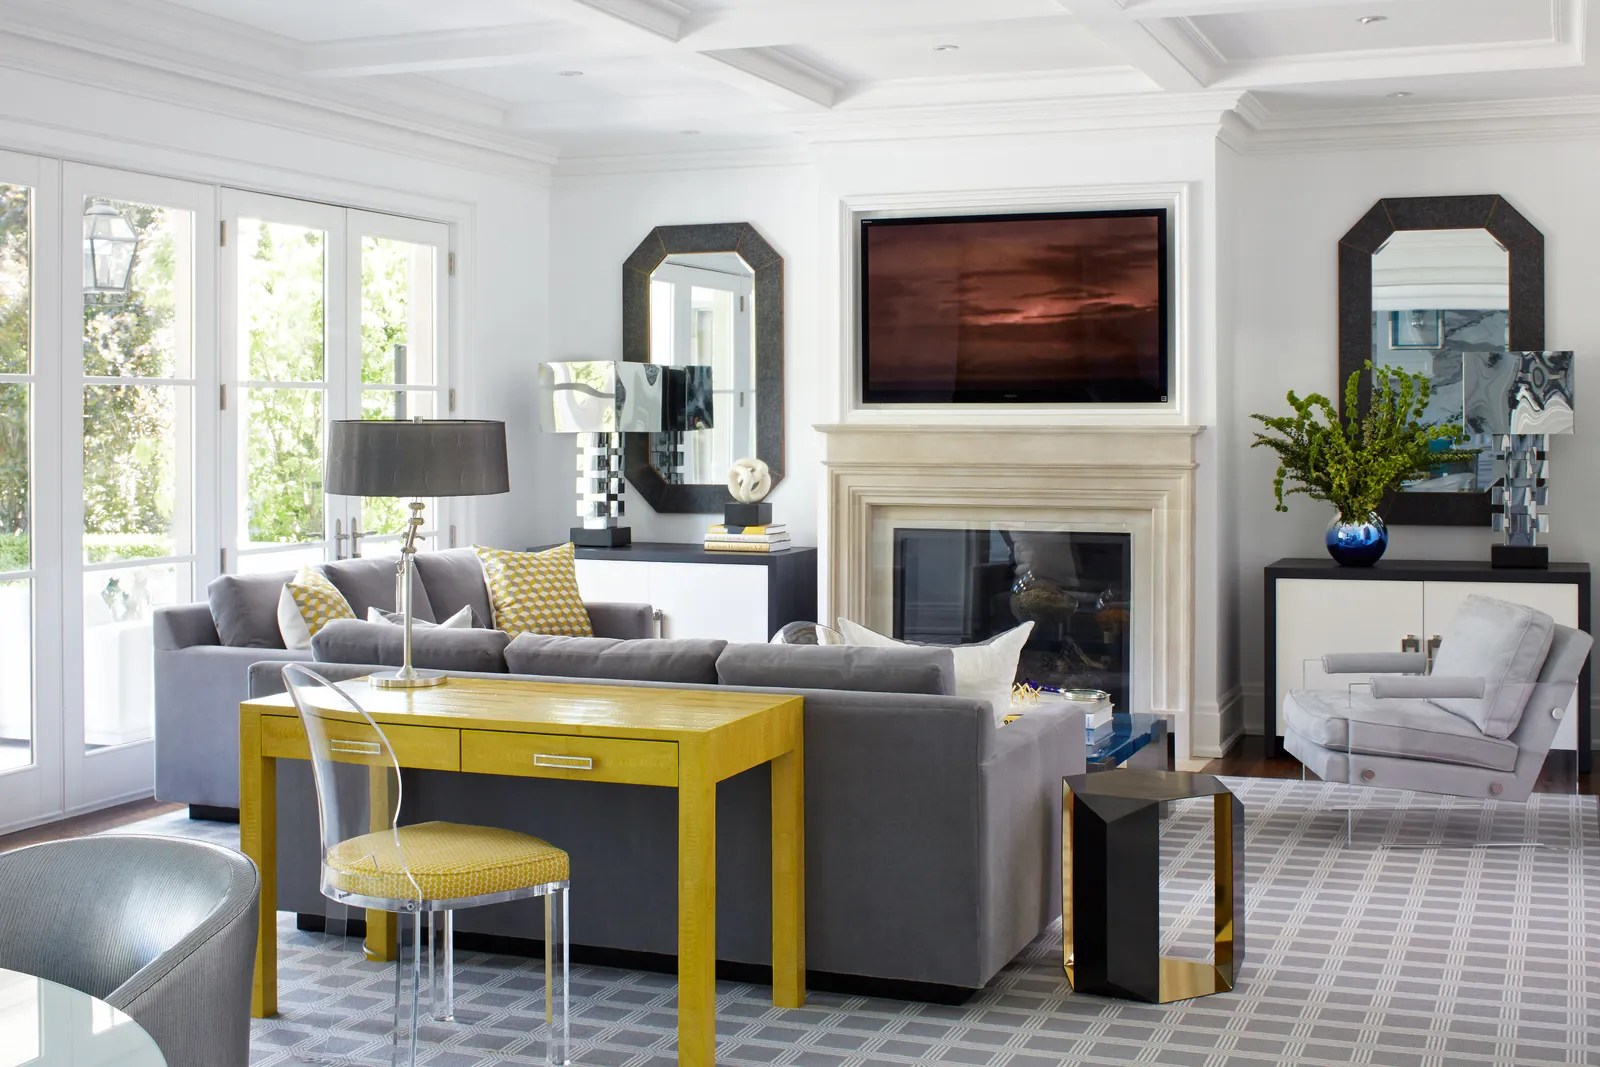 9 Best Living Room Lighting Ideas | Architectural Digest on Best Sconces For Living Rooms Near Me id=77806